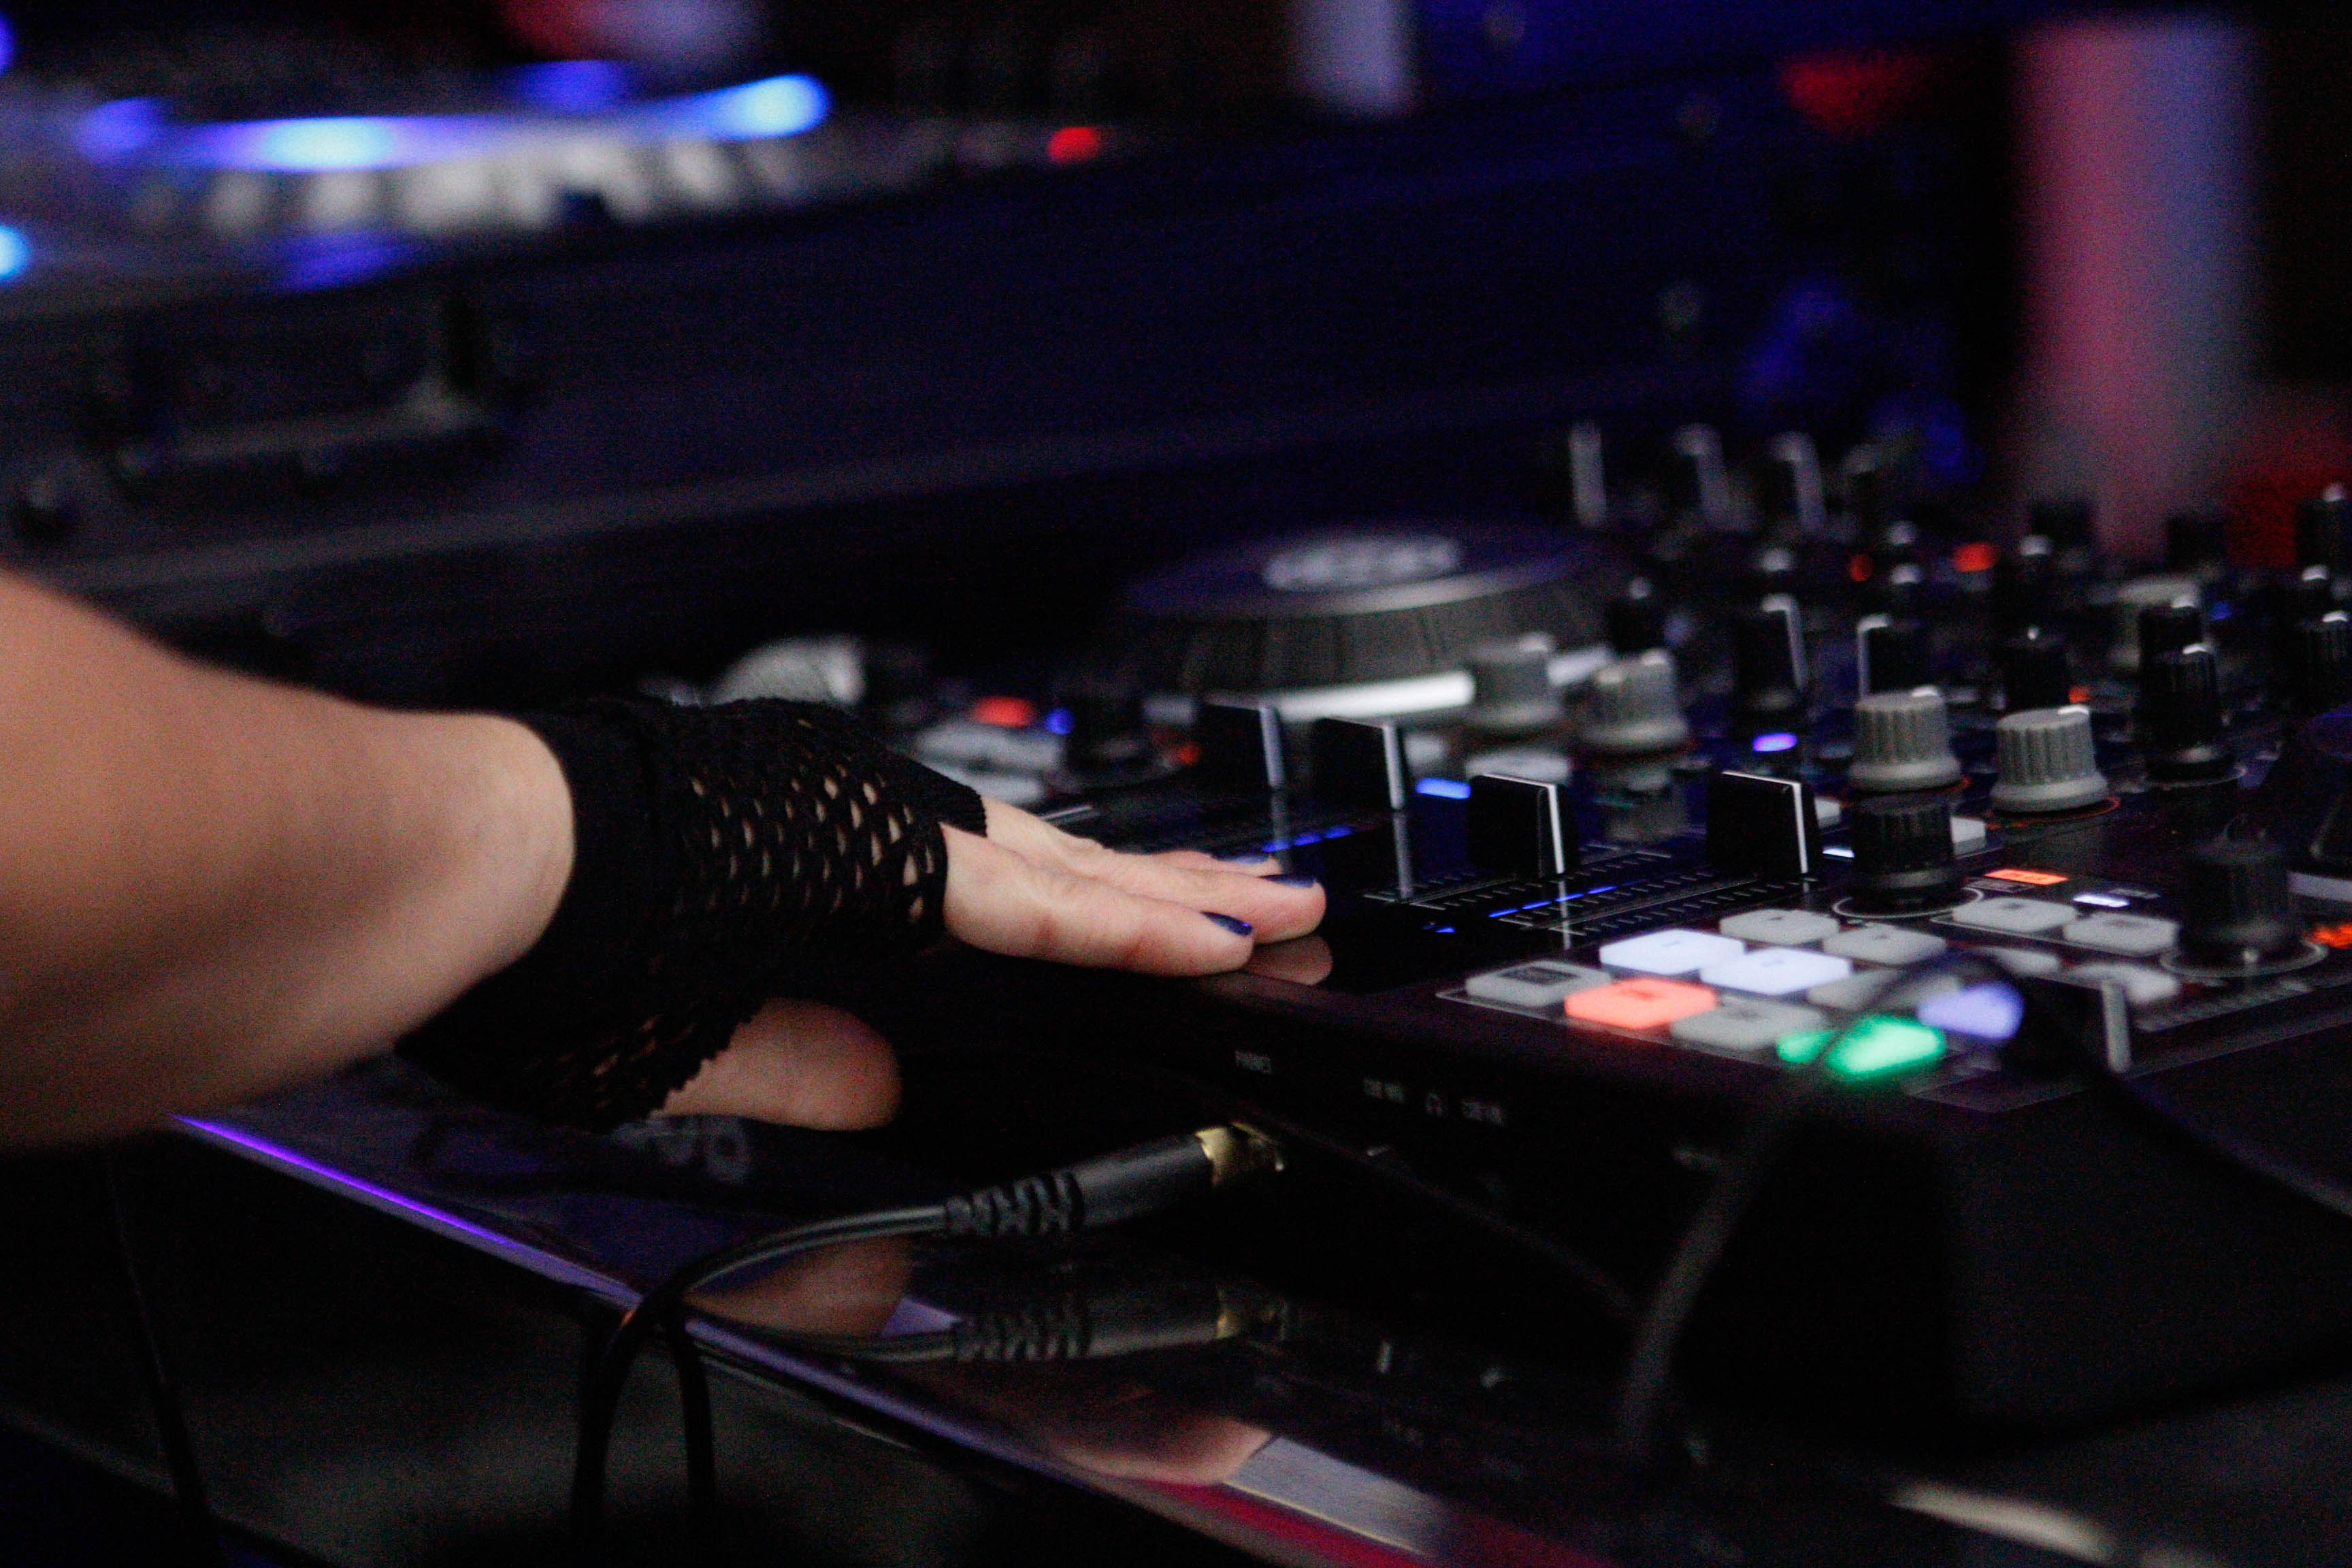 Do it to impress yourself kizuna everyone wants to be that cool guy on stage directing the party right what if you want to be a dj but youre shy should you still try to do it solutioingenieria Choice Image